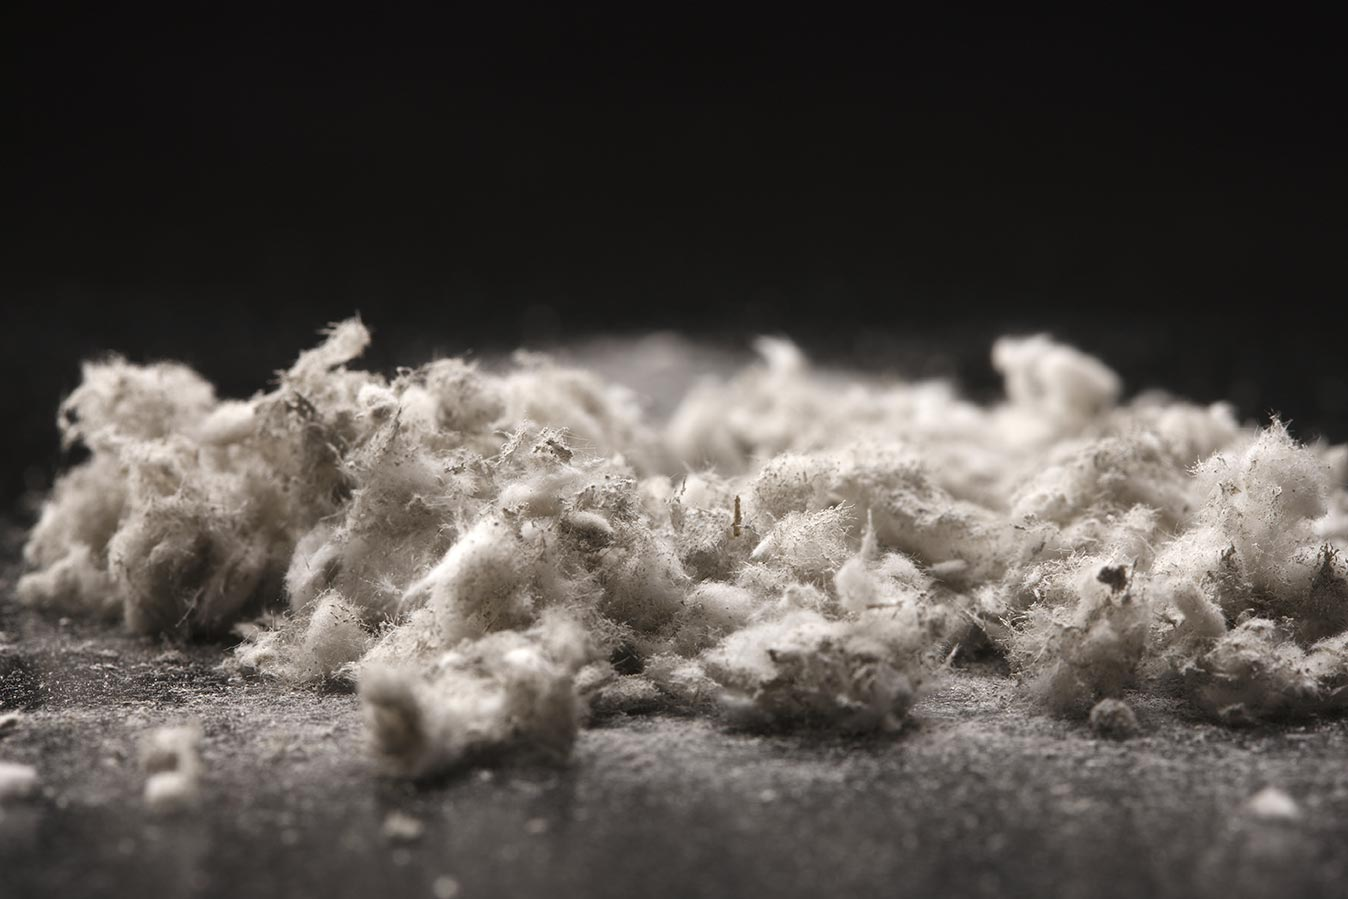 Close up of shredded asbestos fibres